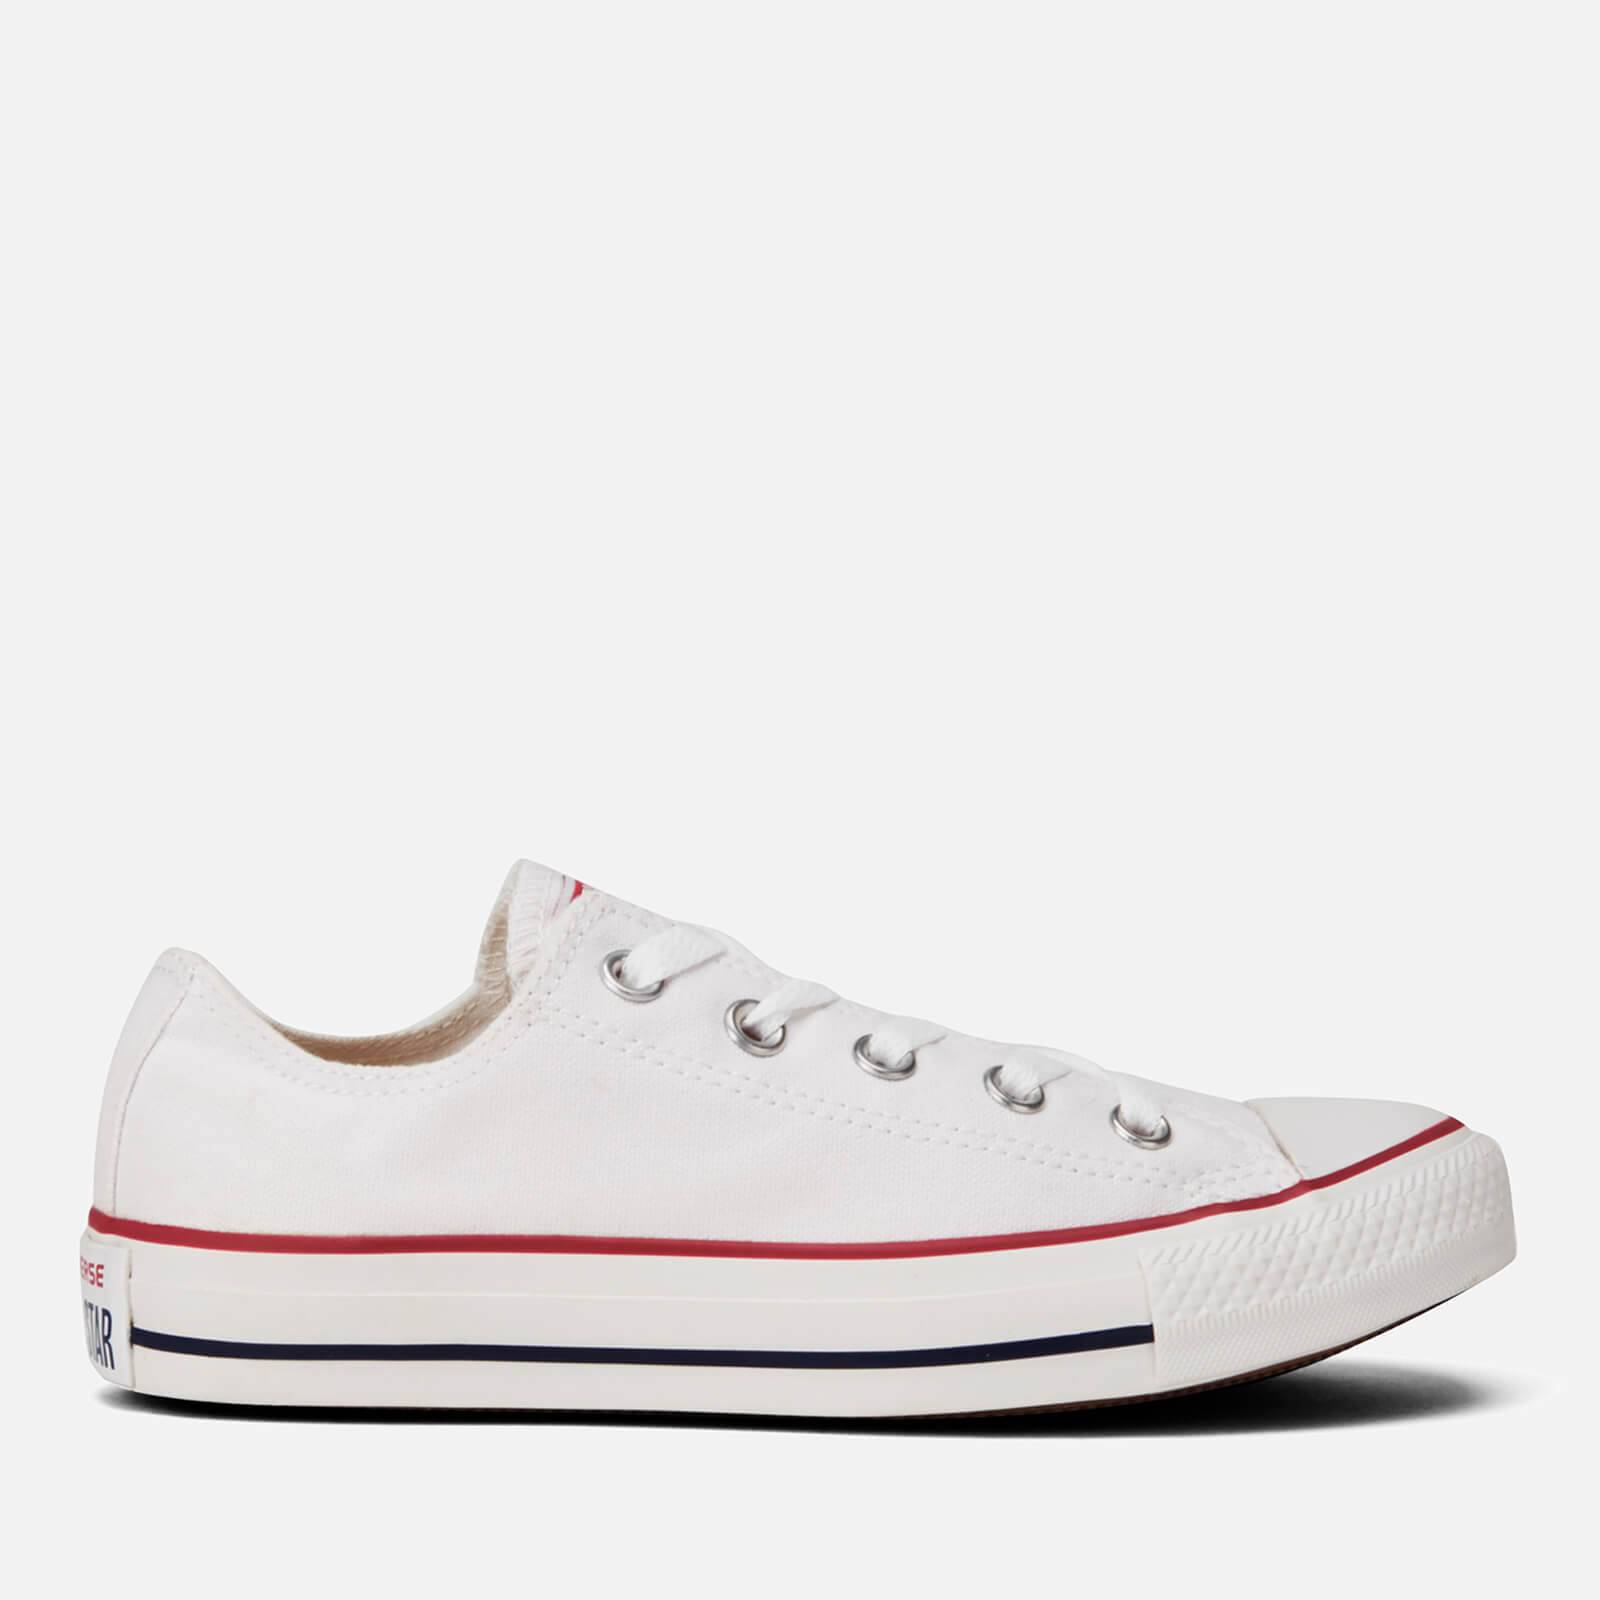 Converse Chuck Taylor All Star Ox Trainers - Optical White - UK 10